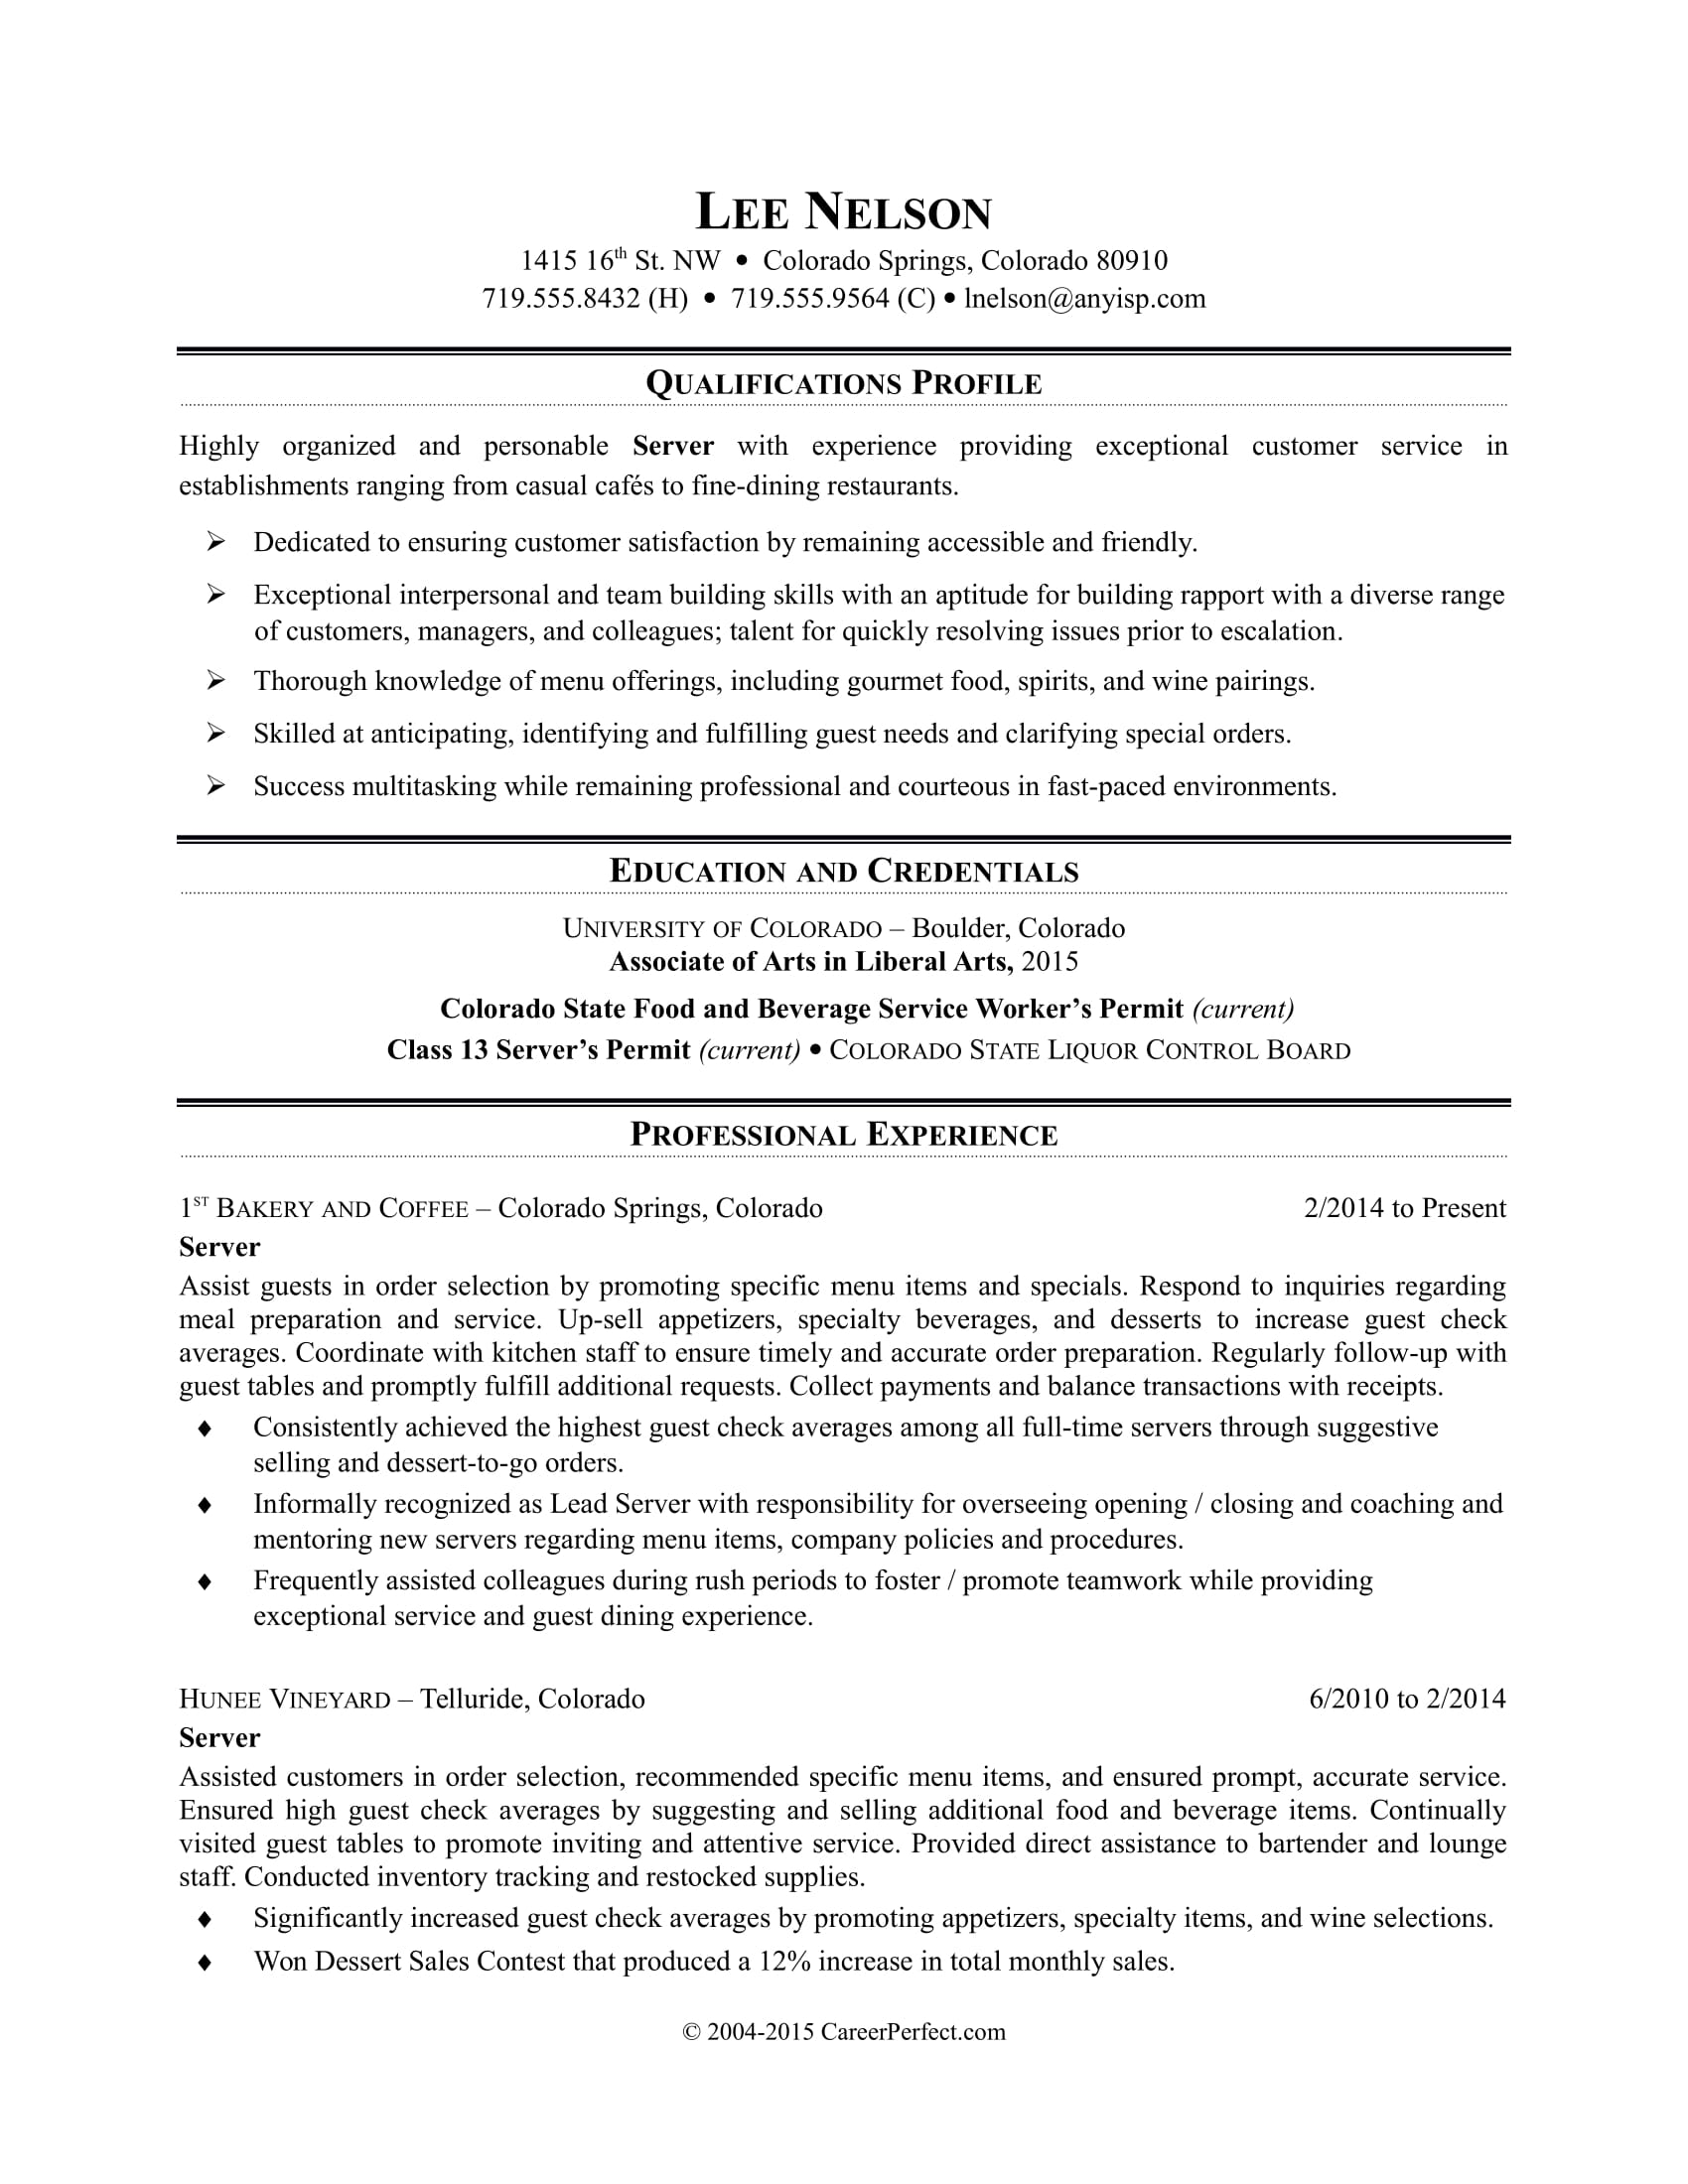 Lovely Sample Resume For A Restaurant Server For Server Skills For Resume